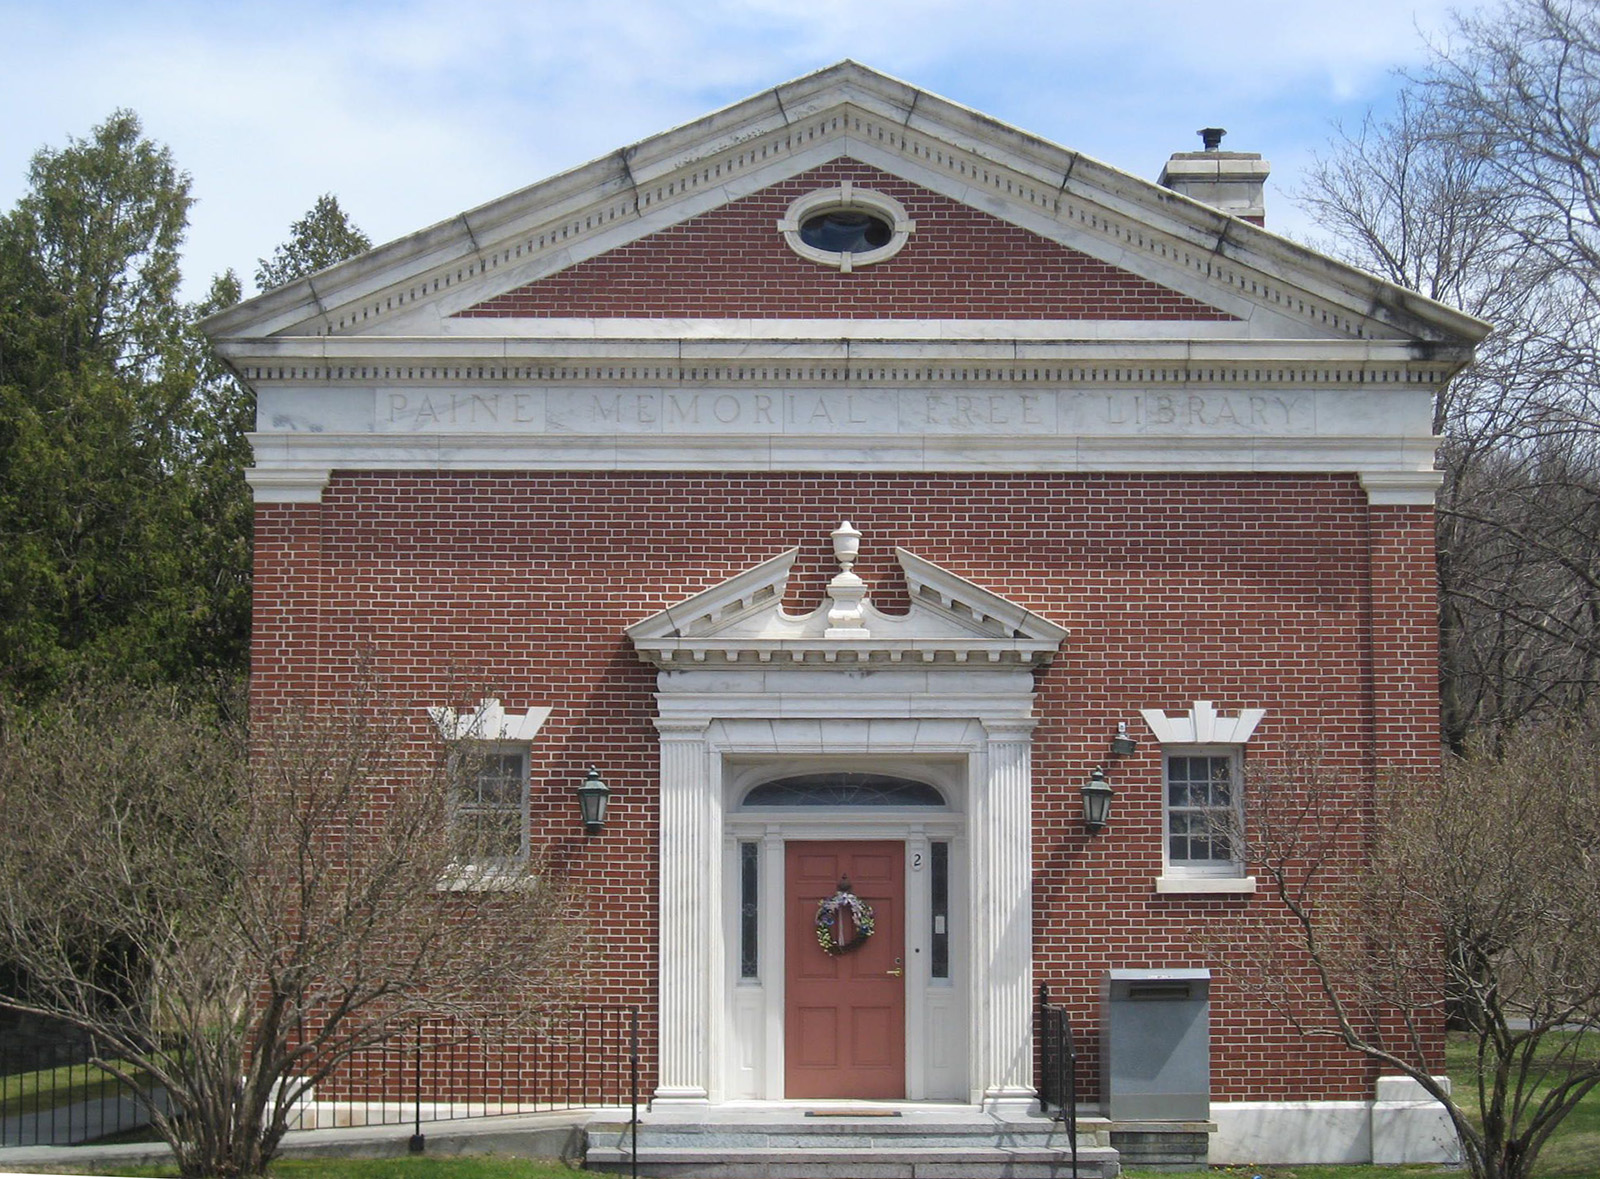 Paine Memorial Library - Willsboro, NY